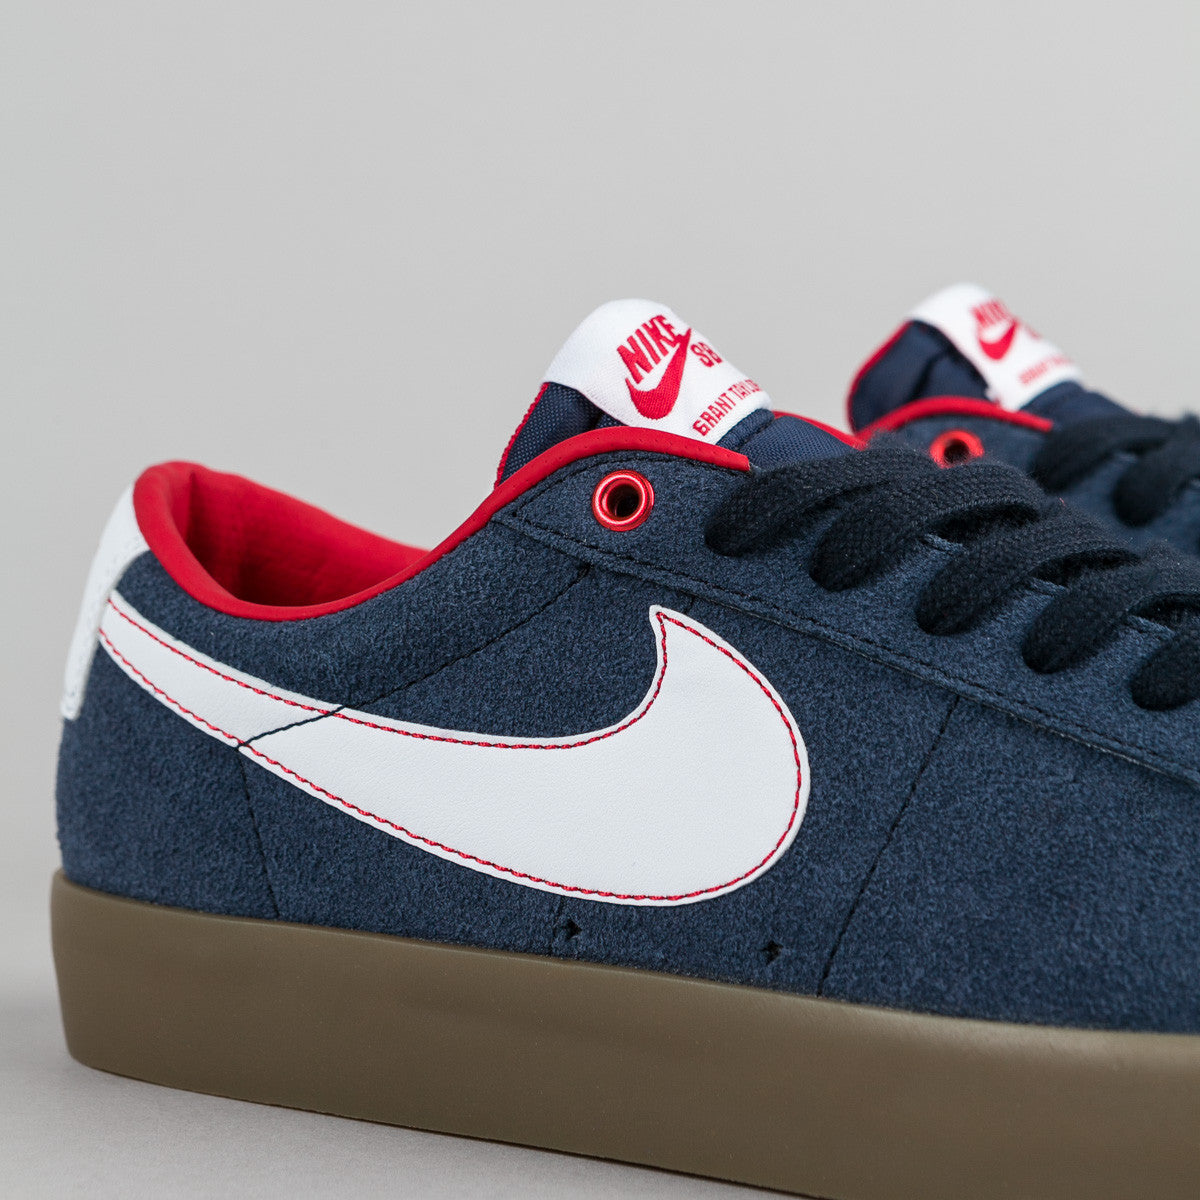 Nike SB Blazer Low GT Shoes - Obsidian / White - University Red